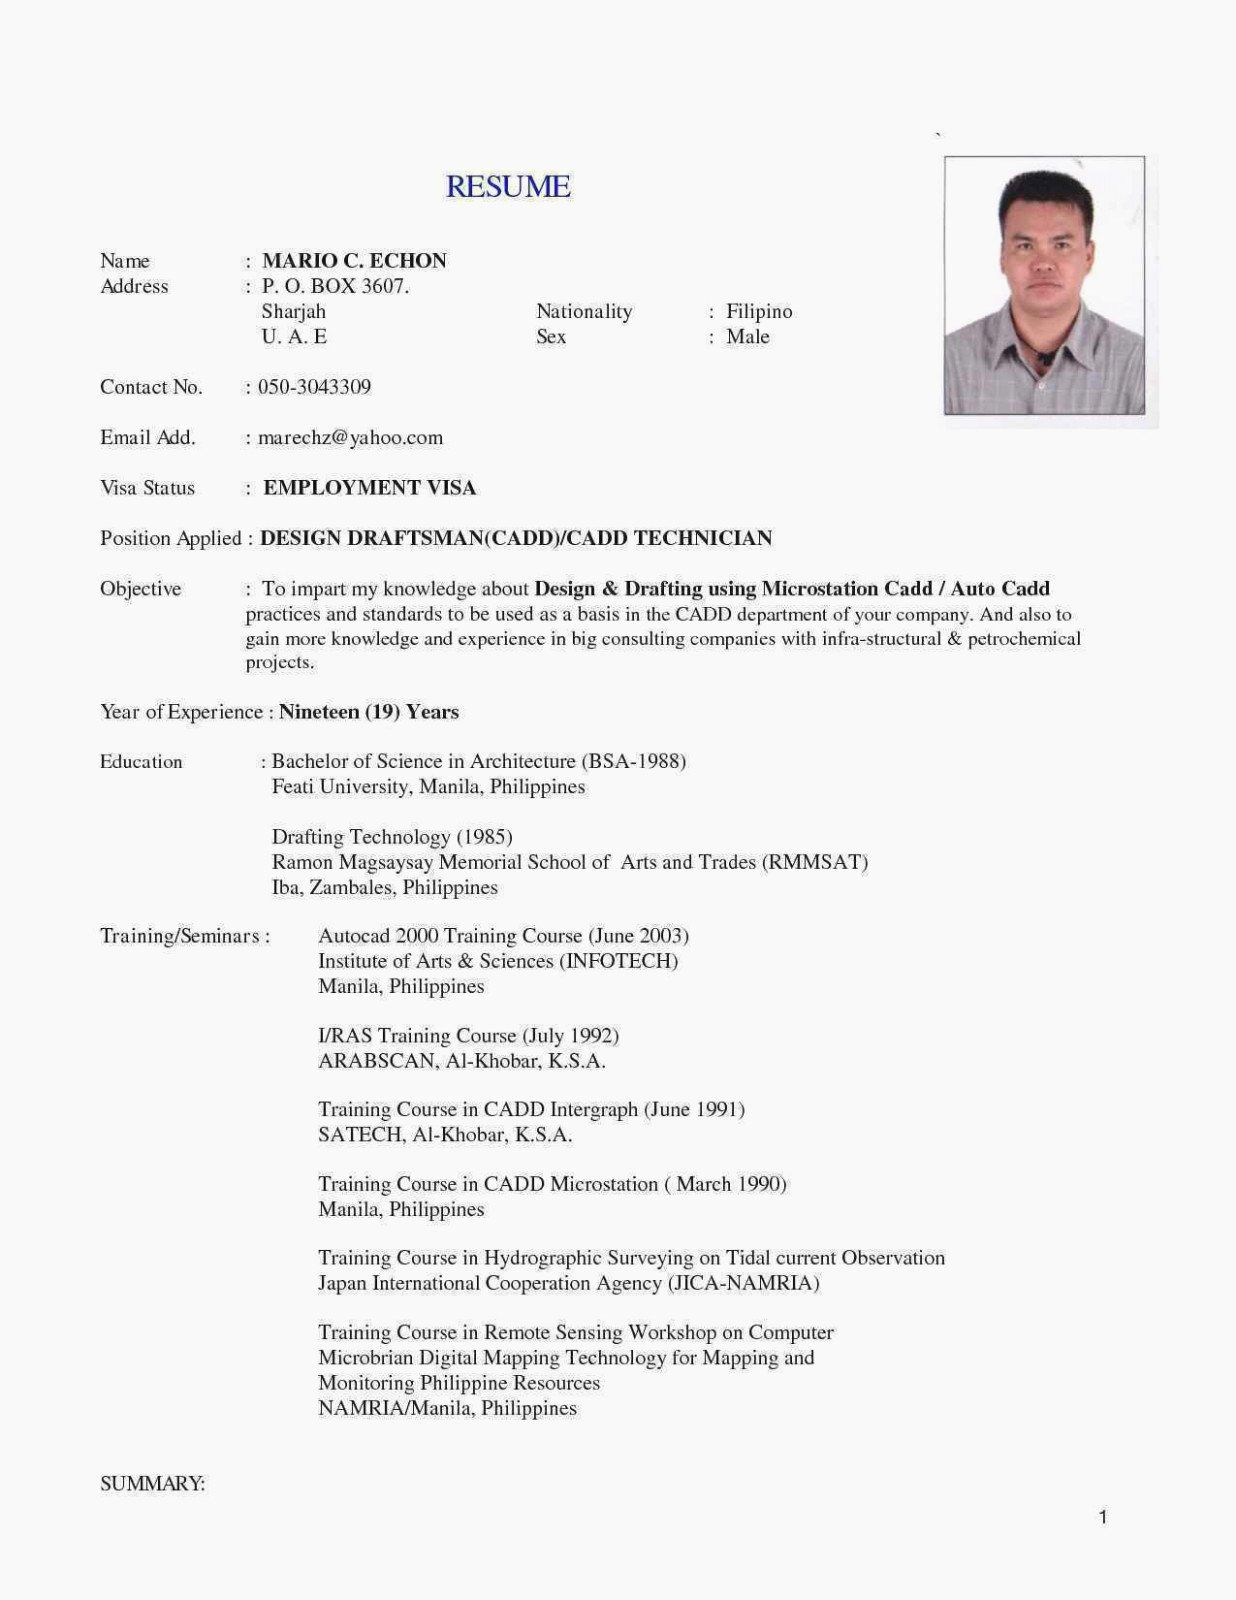 Clinical Laboratory Scientist Resume Luxury 14 Reasons Why Example